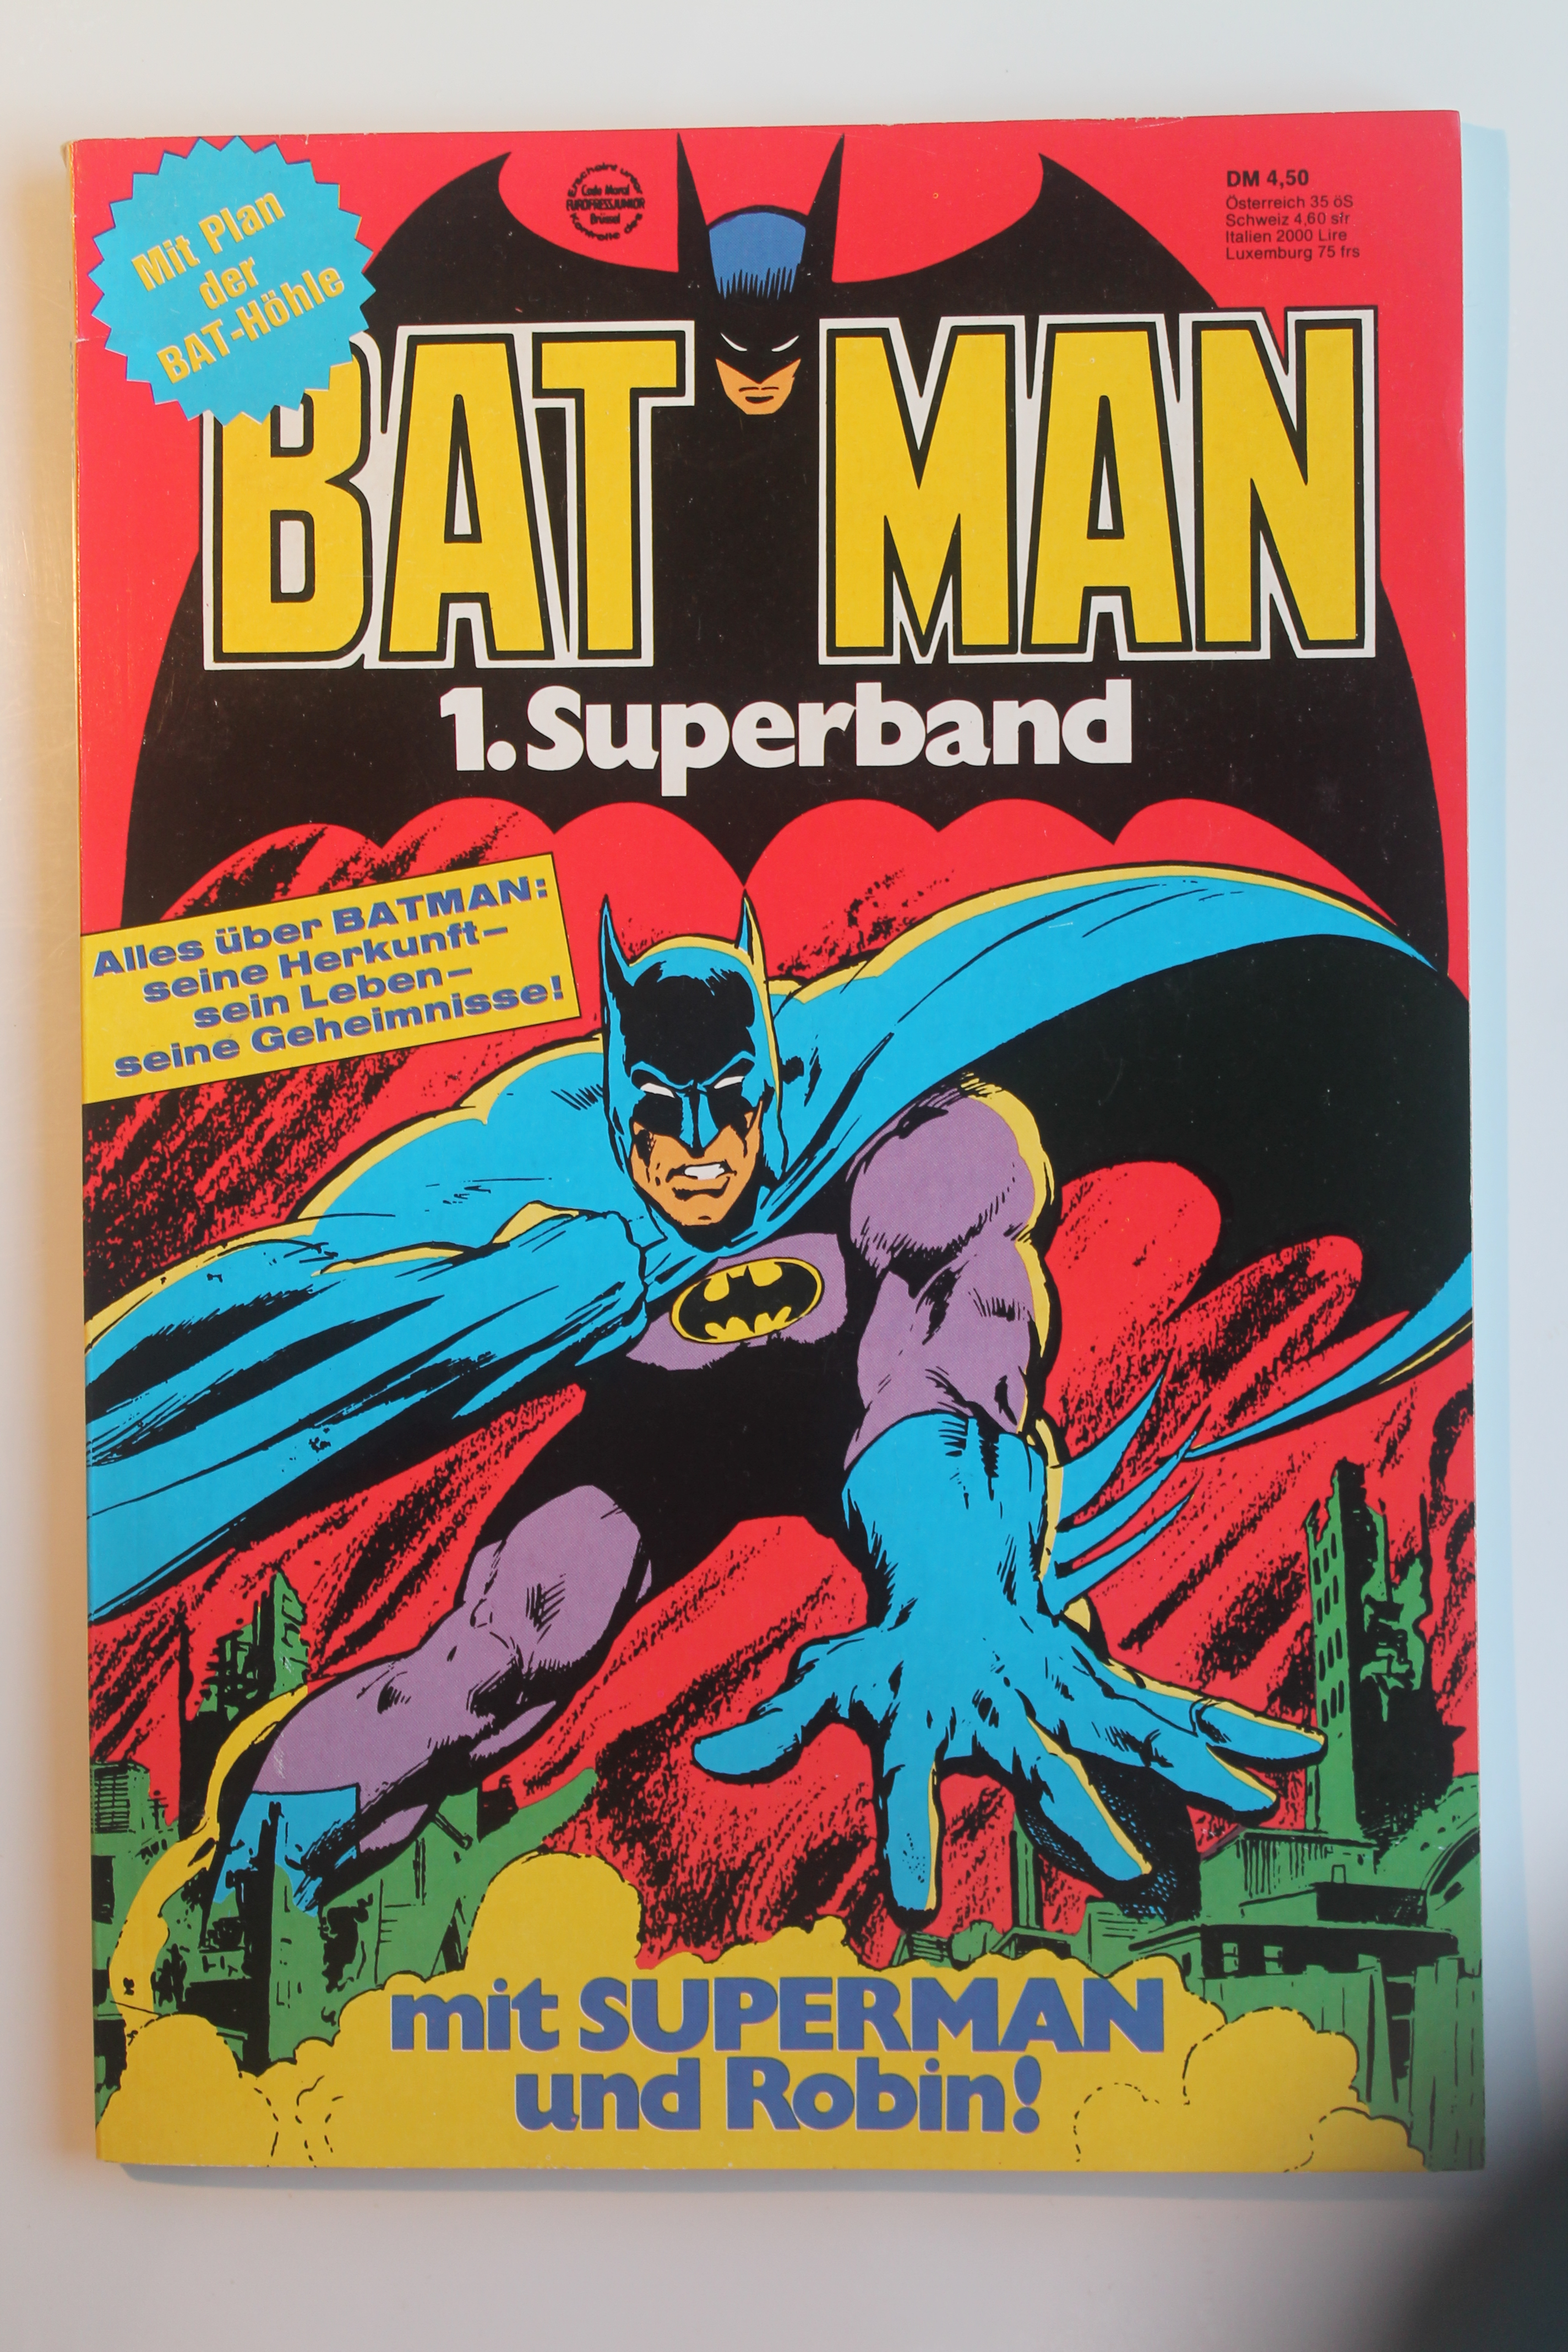 Batman superband 1